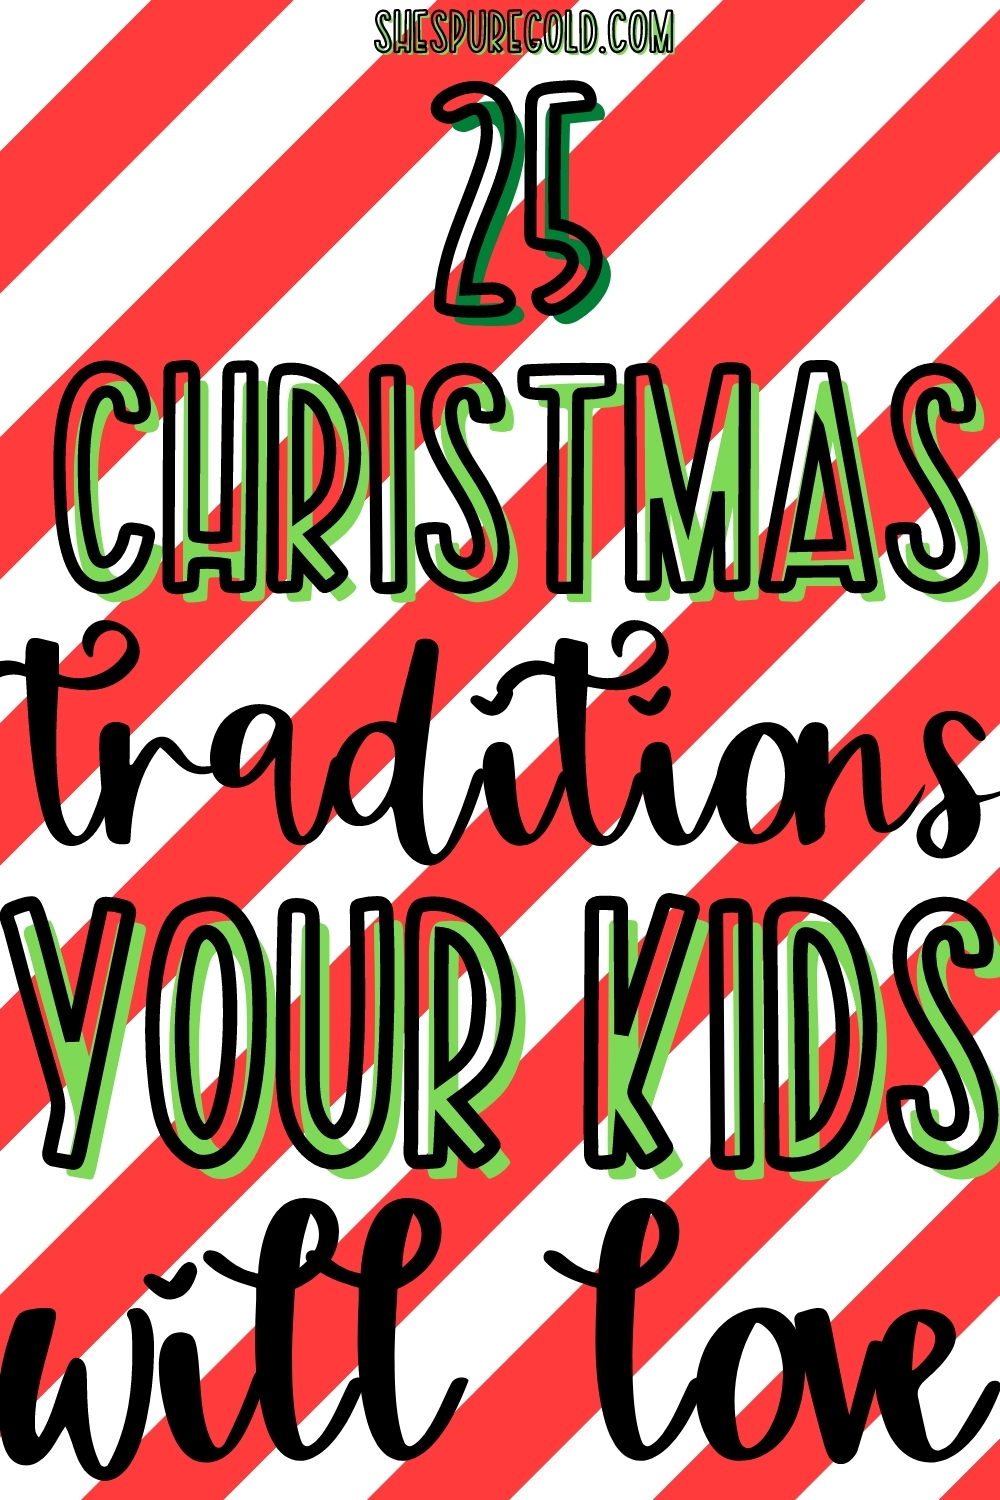 25 Christmas tradition your kids will love